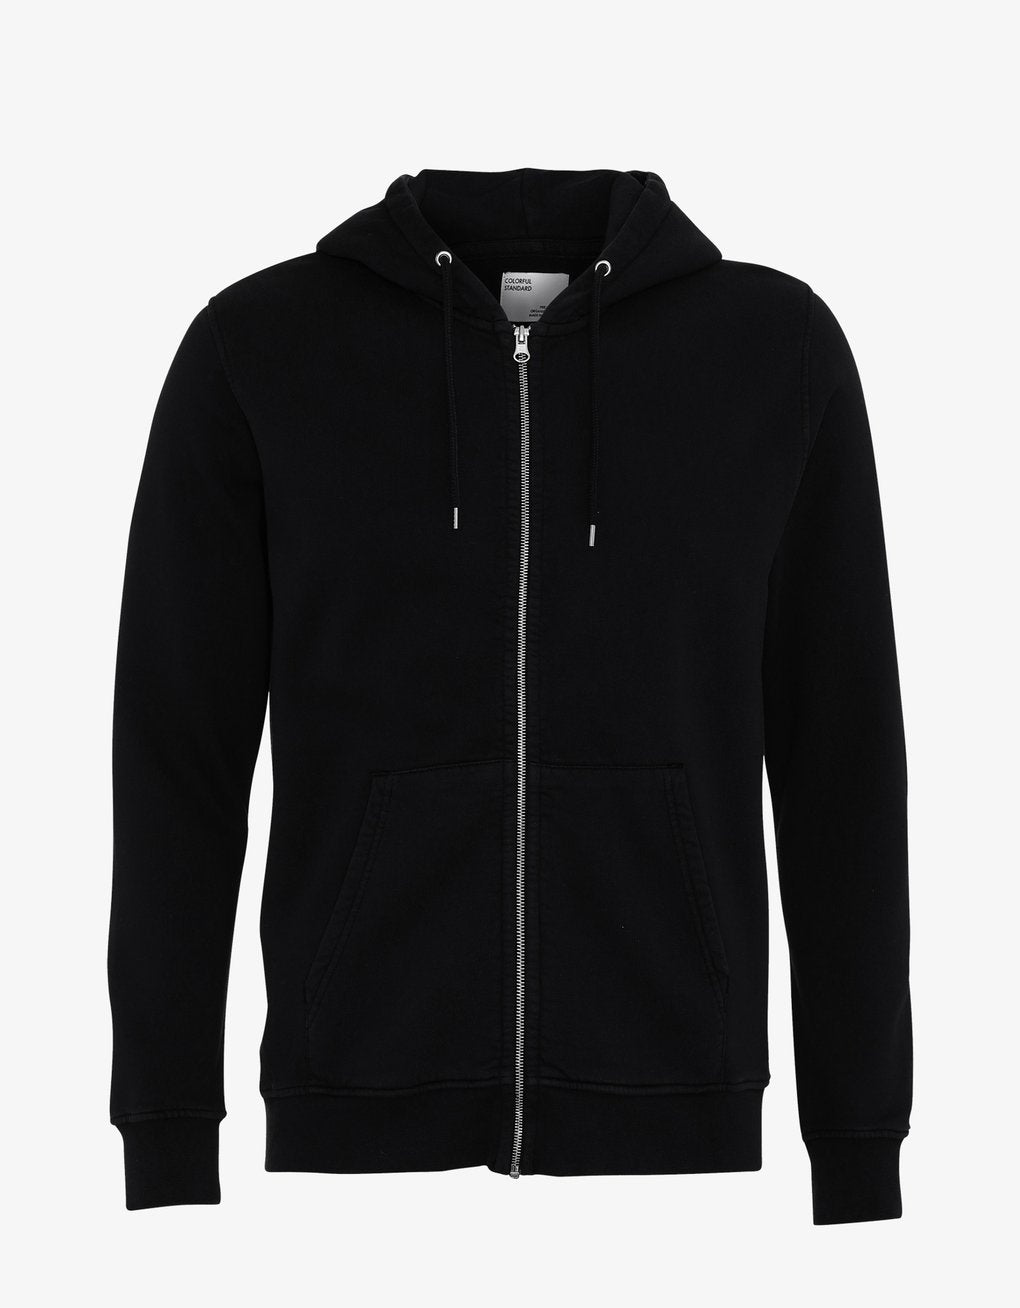 COLORFUL STANDARD | Organic Cotton Zip Hood | Deep Black - LONDØNWORKS